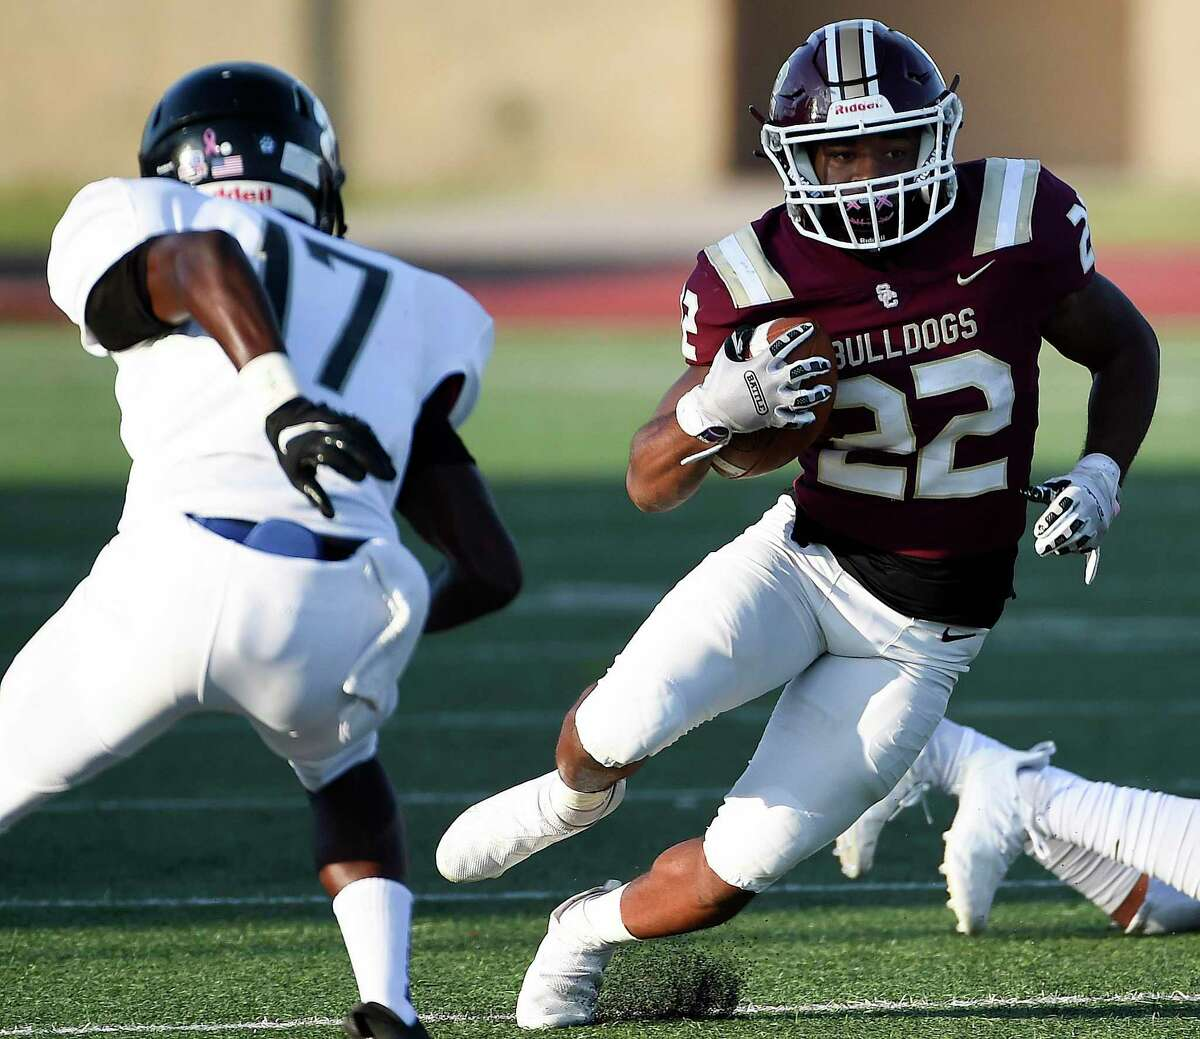 Summer Creek running back Torrie Curry (22) rushes past Westside defensive back Divine Afuke (17) during the first half of a high school football game, Saturday, Sept. 18, 2021, in Humble.